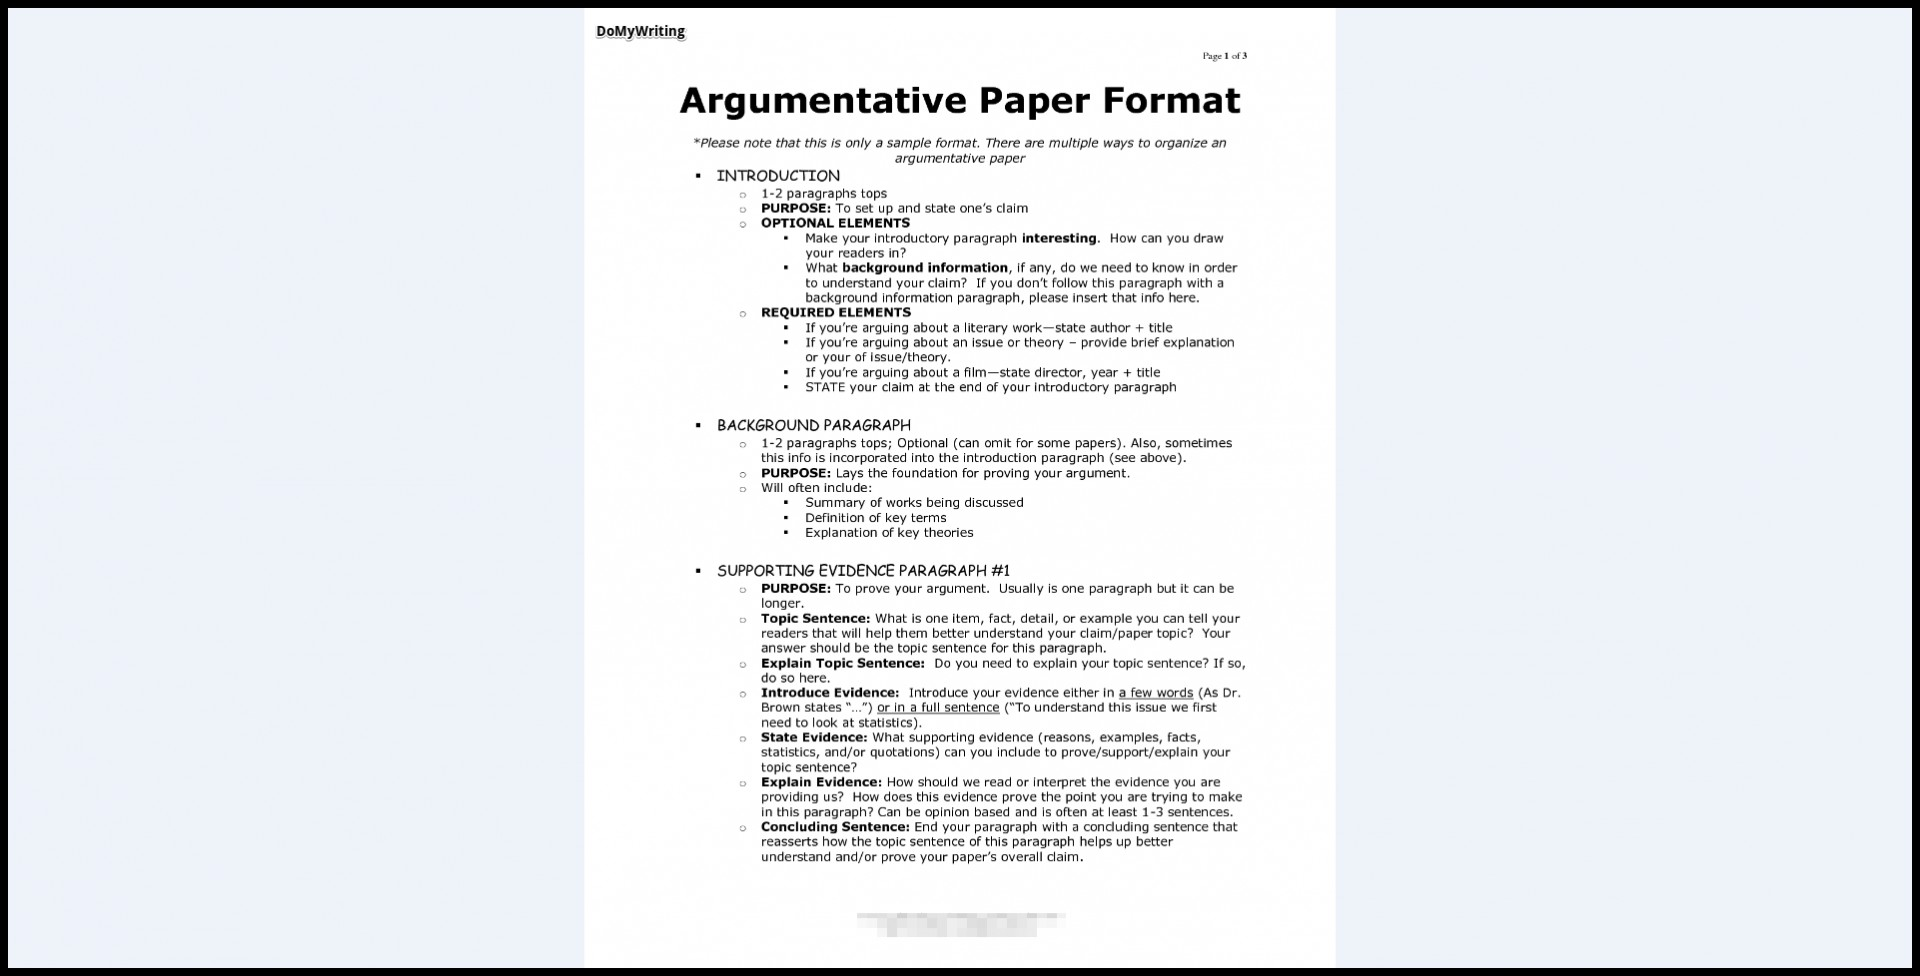 024 Argumentative Essay Format Research Paper Archaicawful Introduction Sample Of 1920